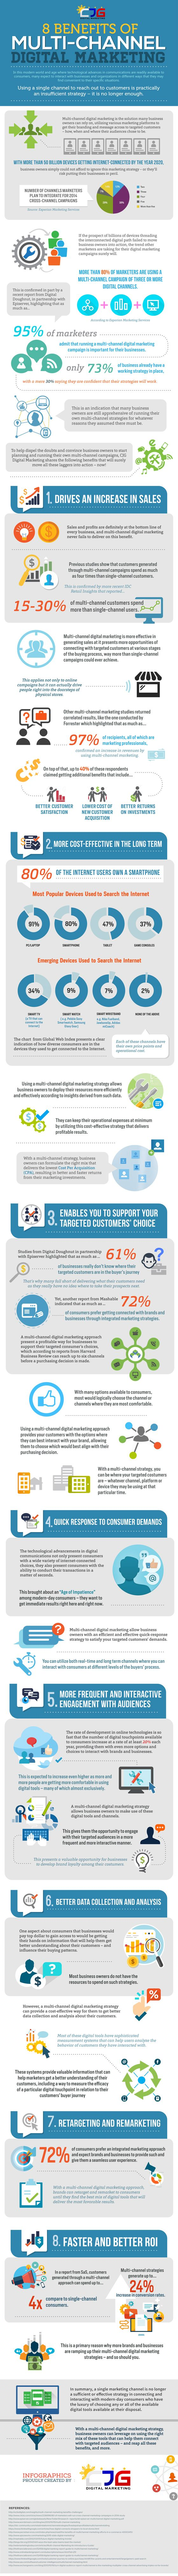 """95% of marketers admit that running a multi-channel digital marketing campaign is important for their businesses."""